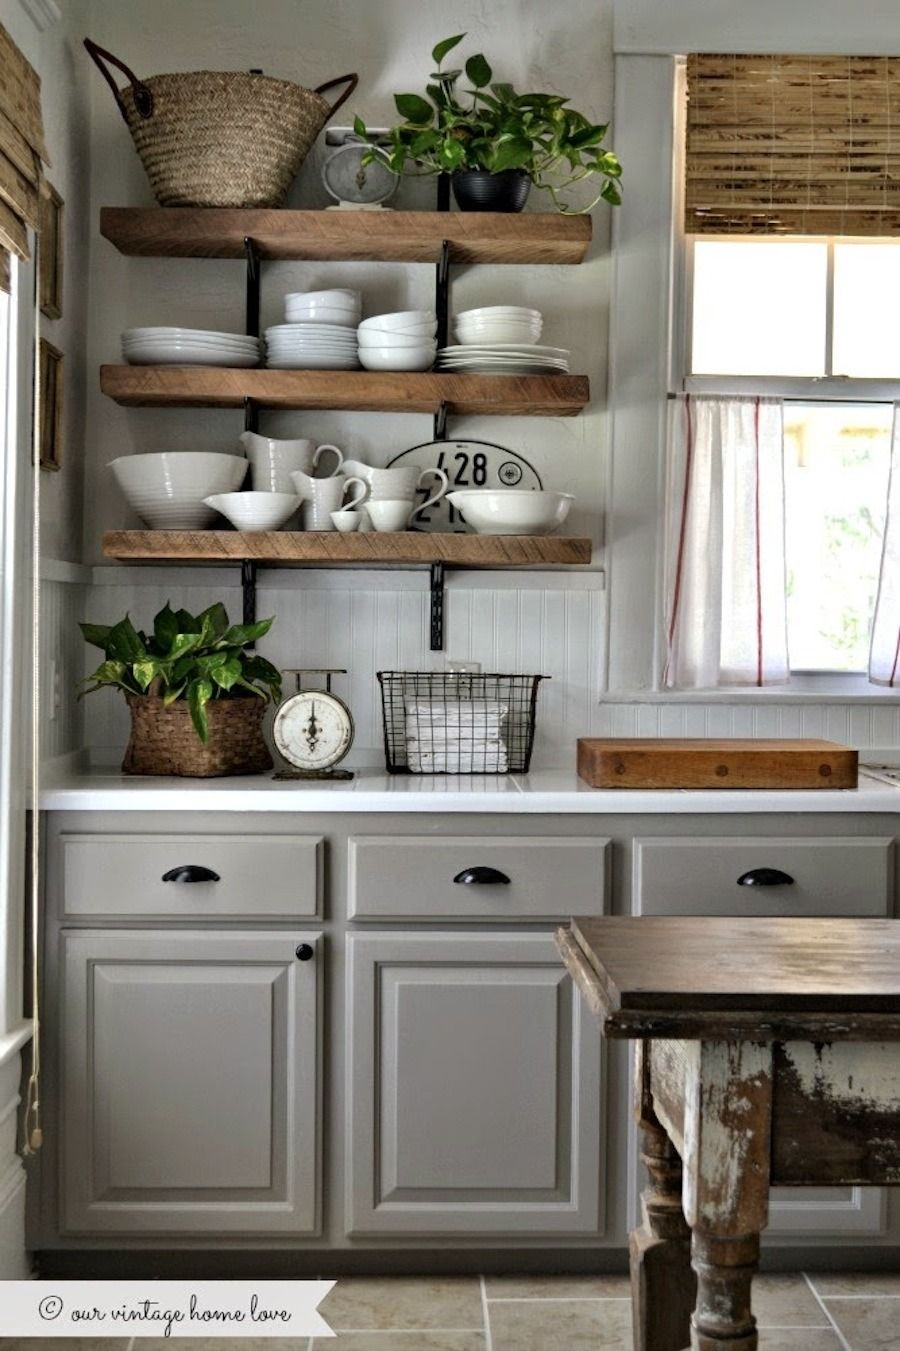 2 country kitchen designs Rustic Country Kitchen Decorations Distinguish a Unified Design